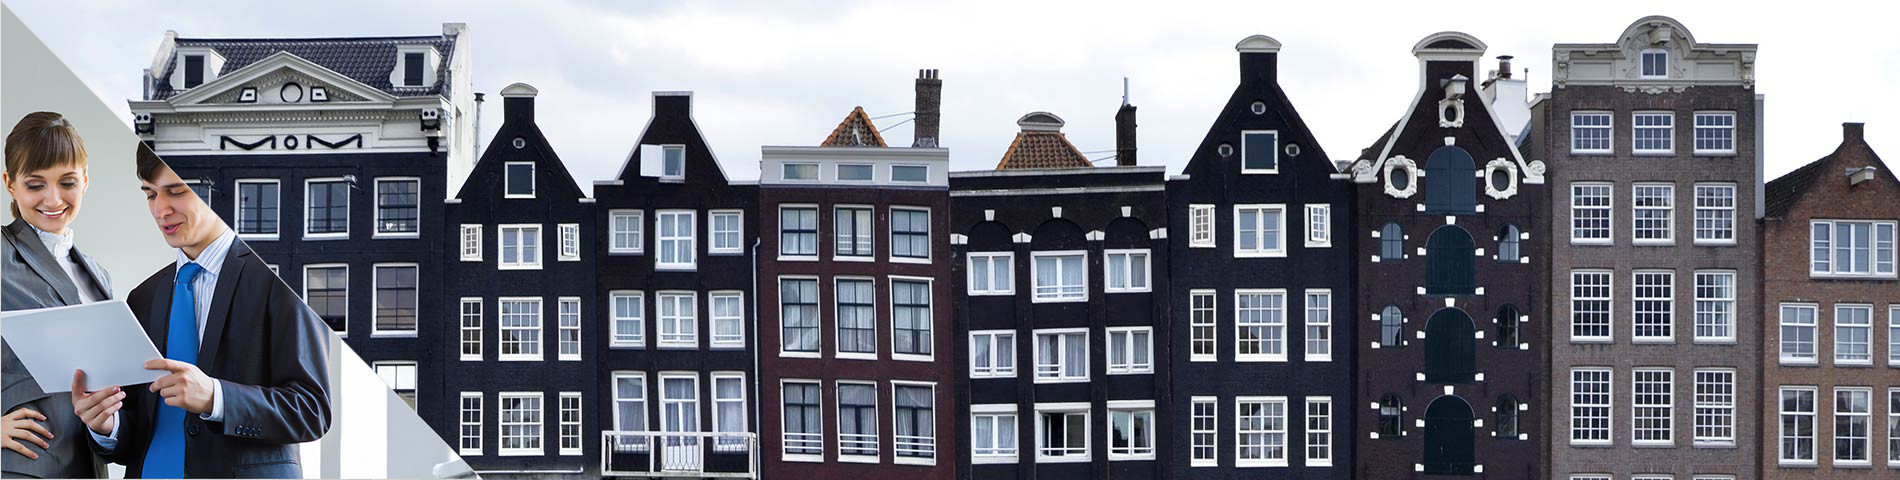 Amsterdam - Business Individuale